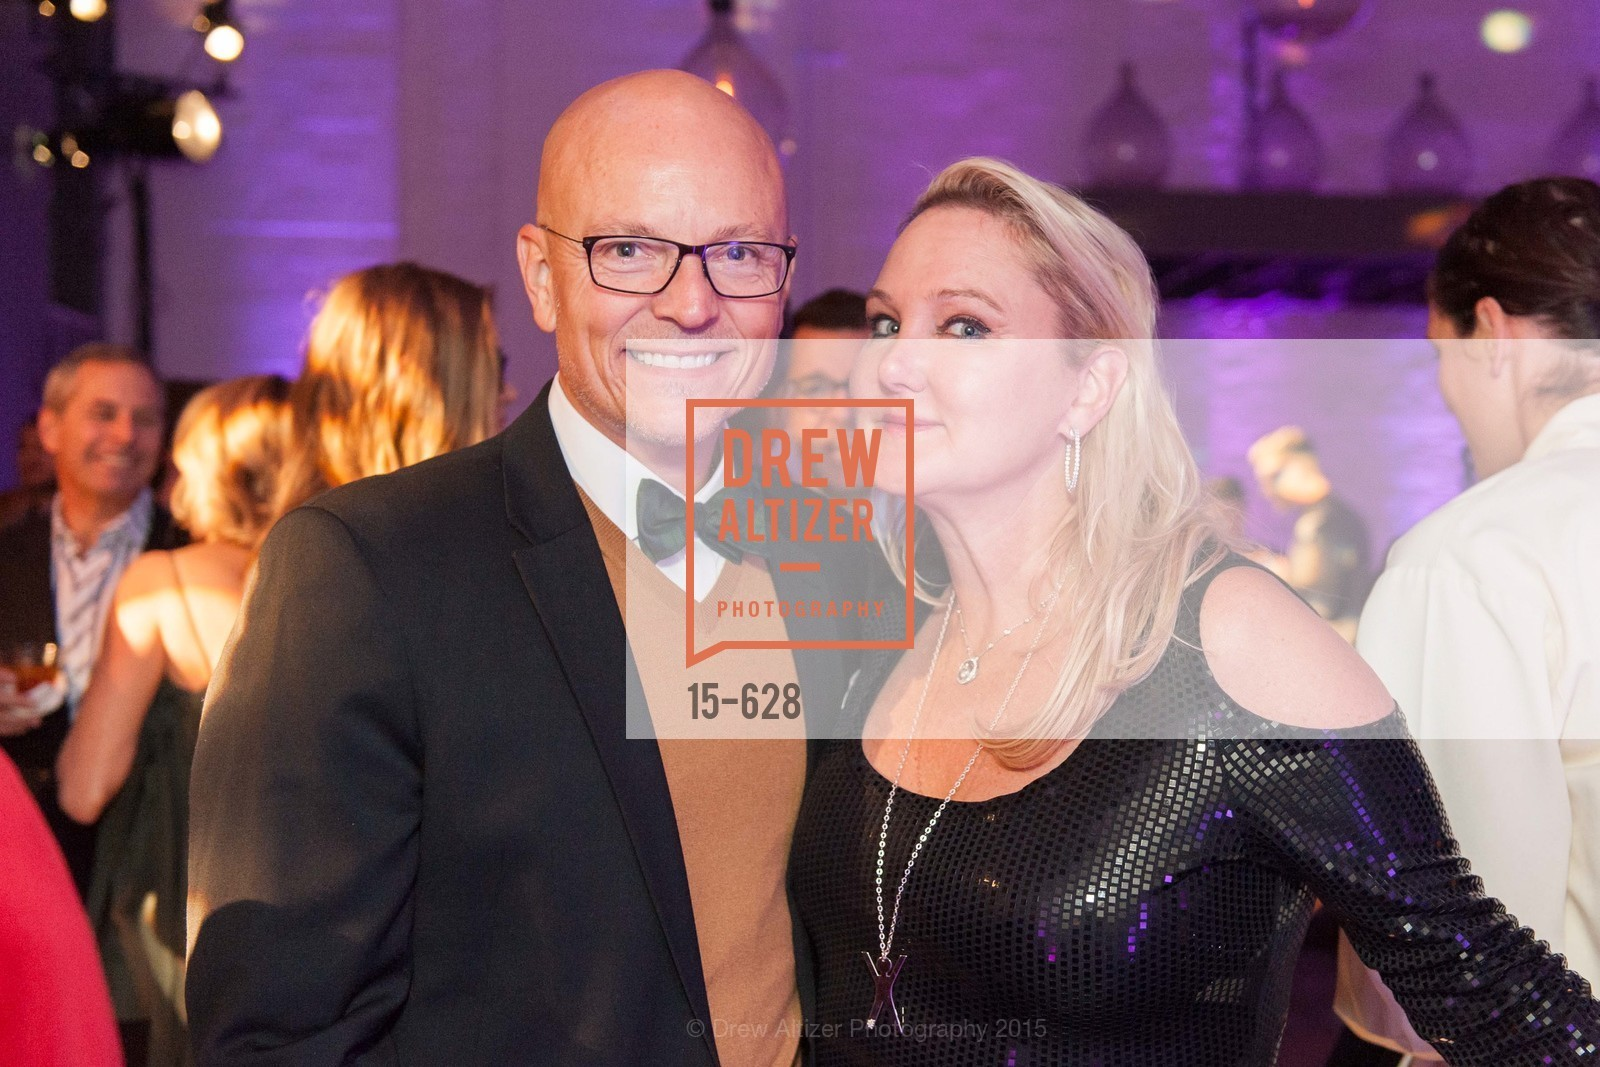 Eric Knight, Sheri Desmarest, Gregg Lynn & Glenn Risso's Holiday Party, Blunome Winery, December 5th, 2015,Drew Altizer, Drew Altizer Photography, full-service agency, private events, San Francisco photographer, photographer california